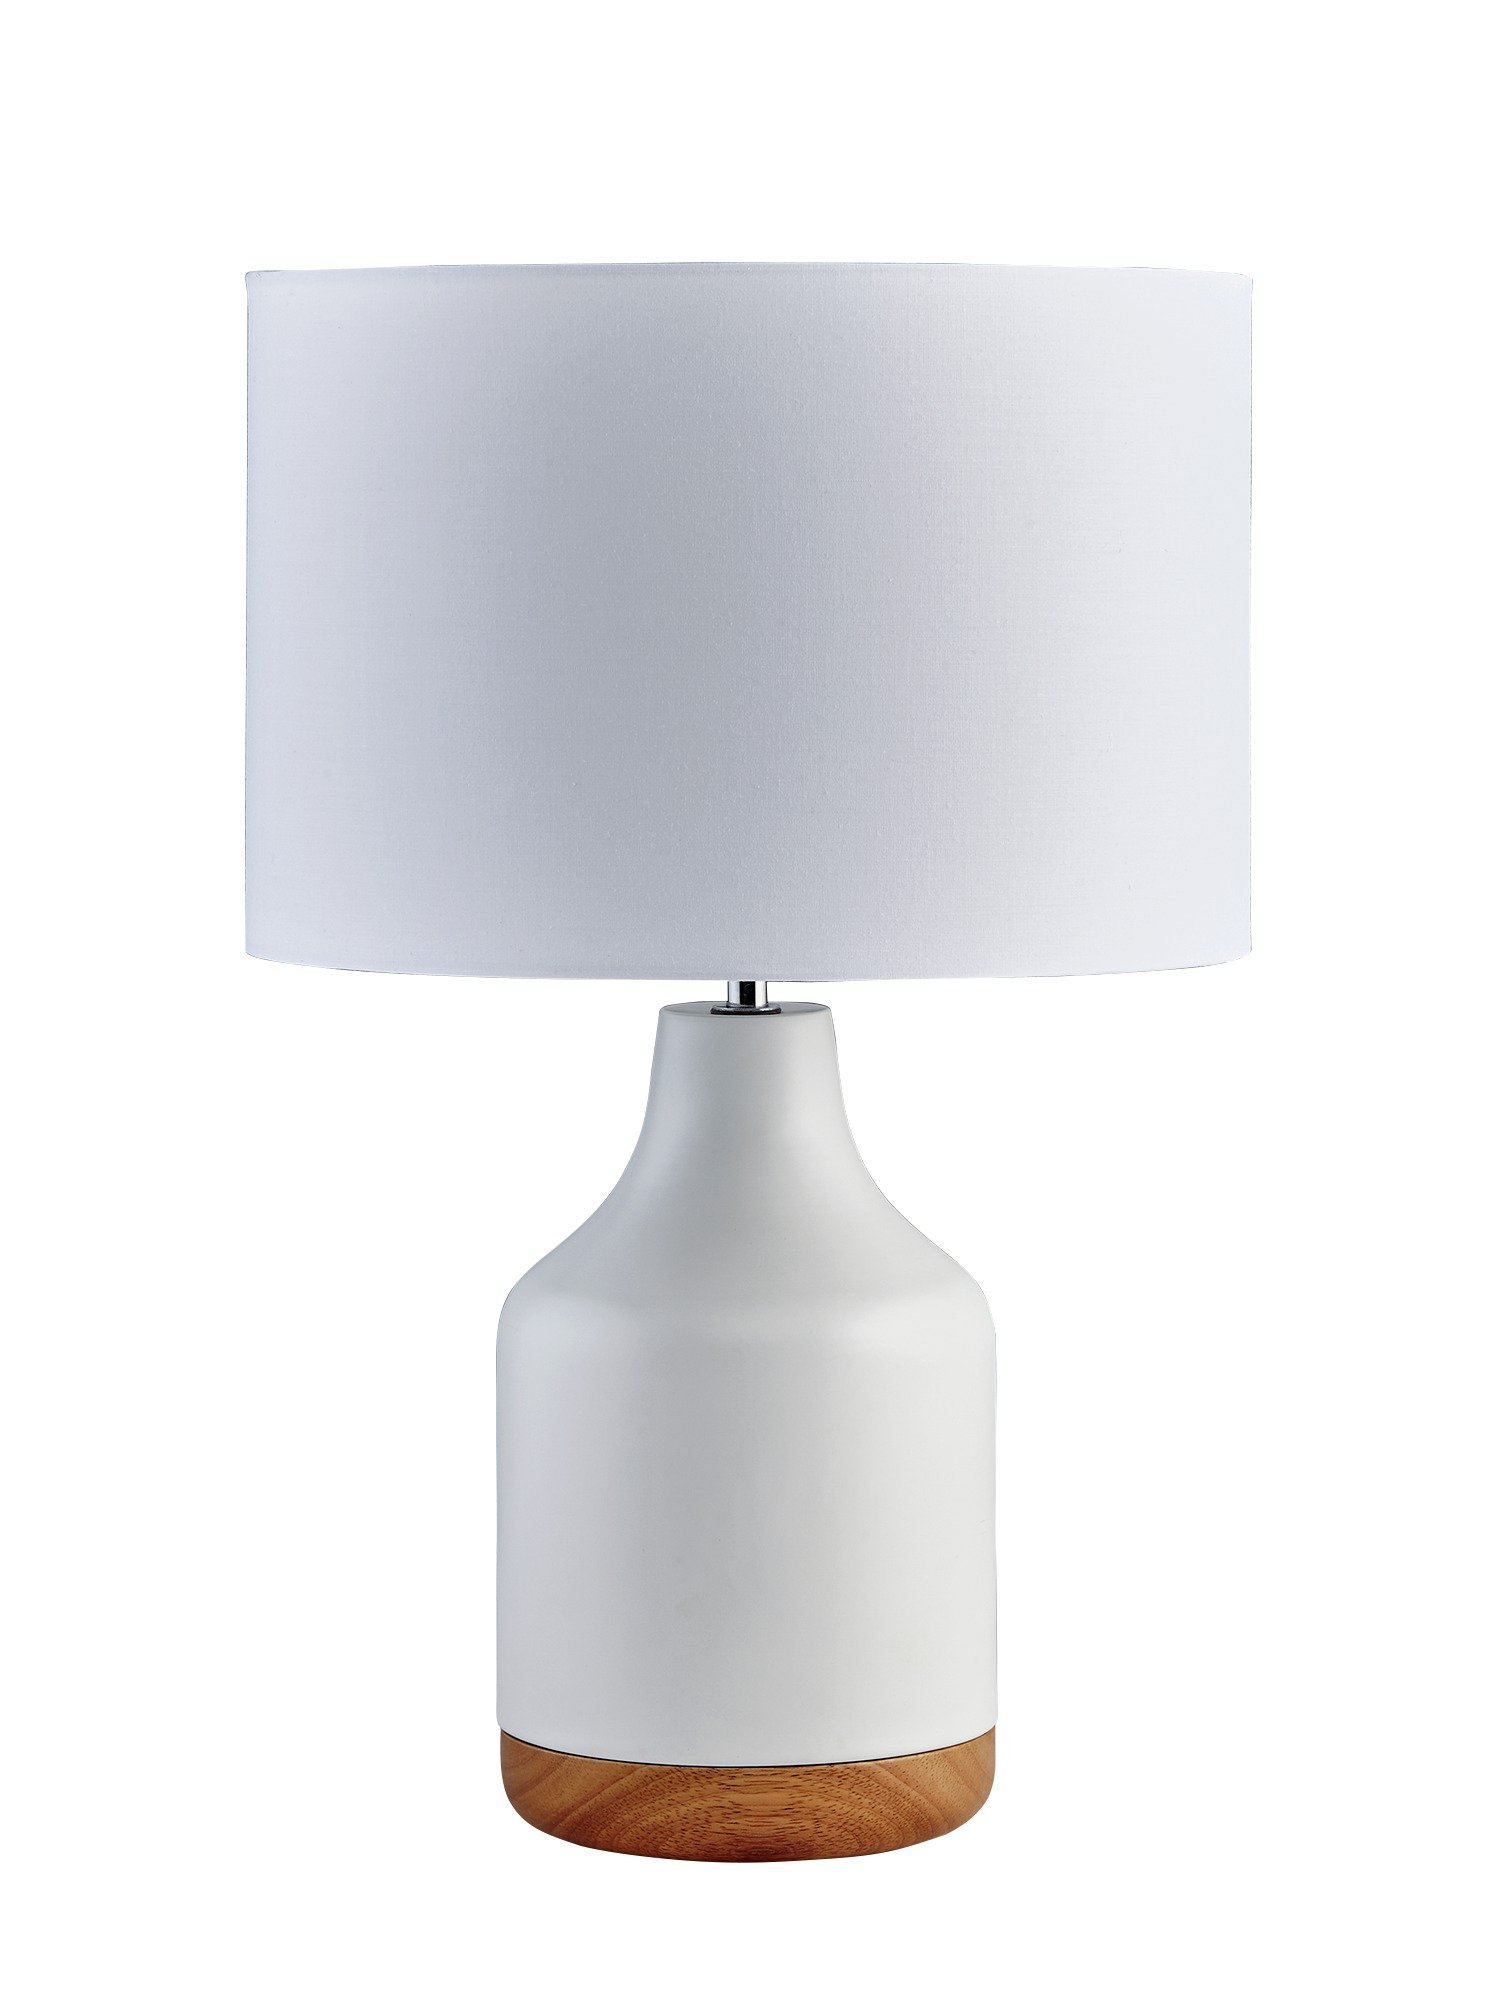 Heart of House Inca Metal & Wood Table Lamp - White